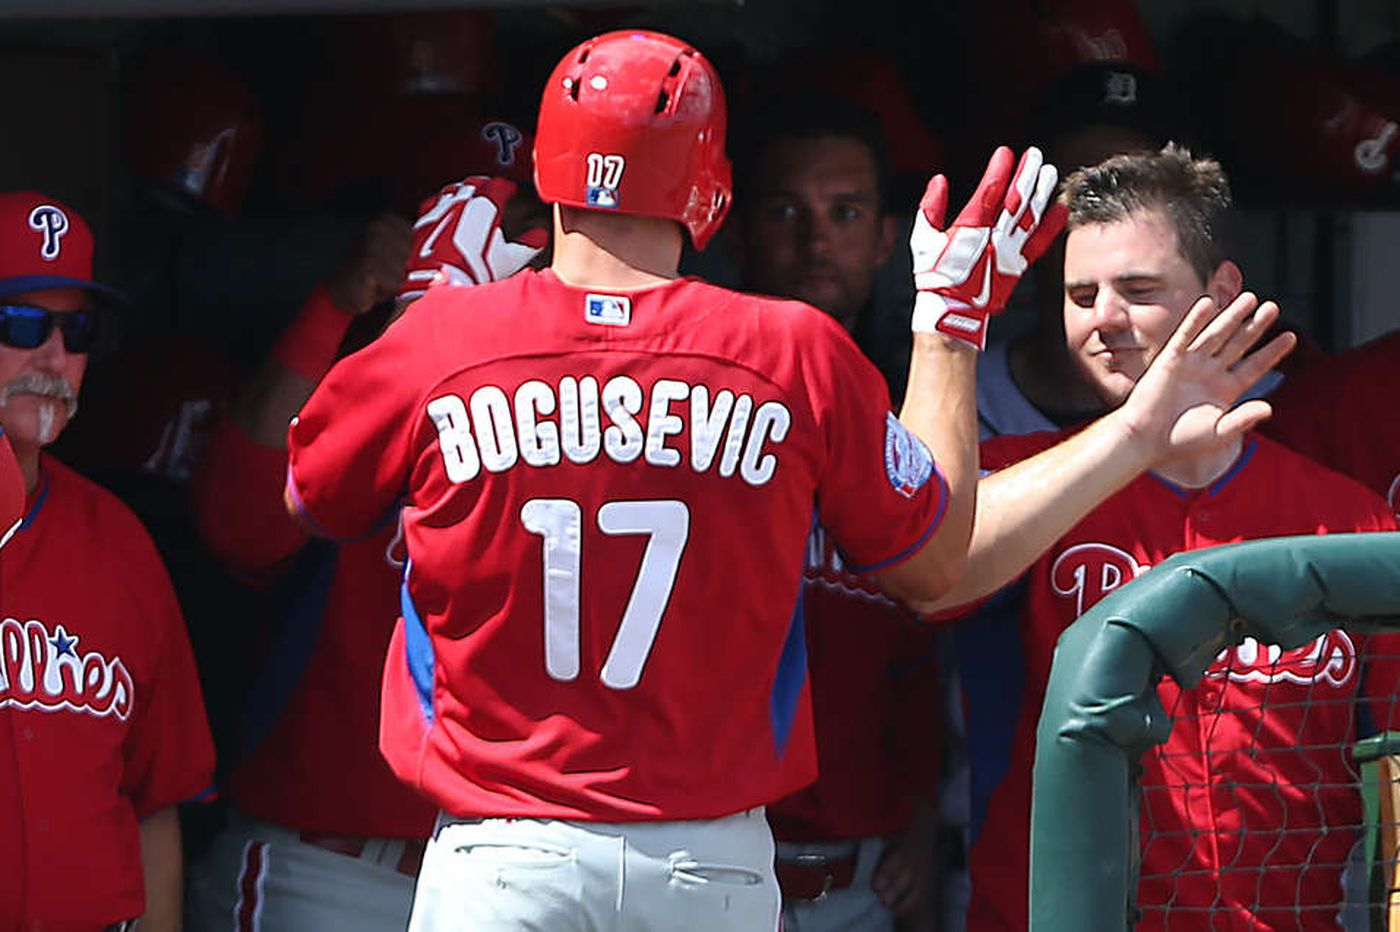 Phillies' Bogusevic makes most of unexpected start, smacks two homers